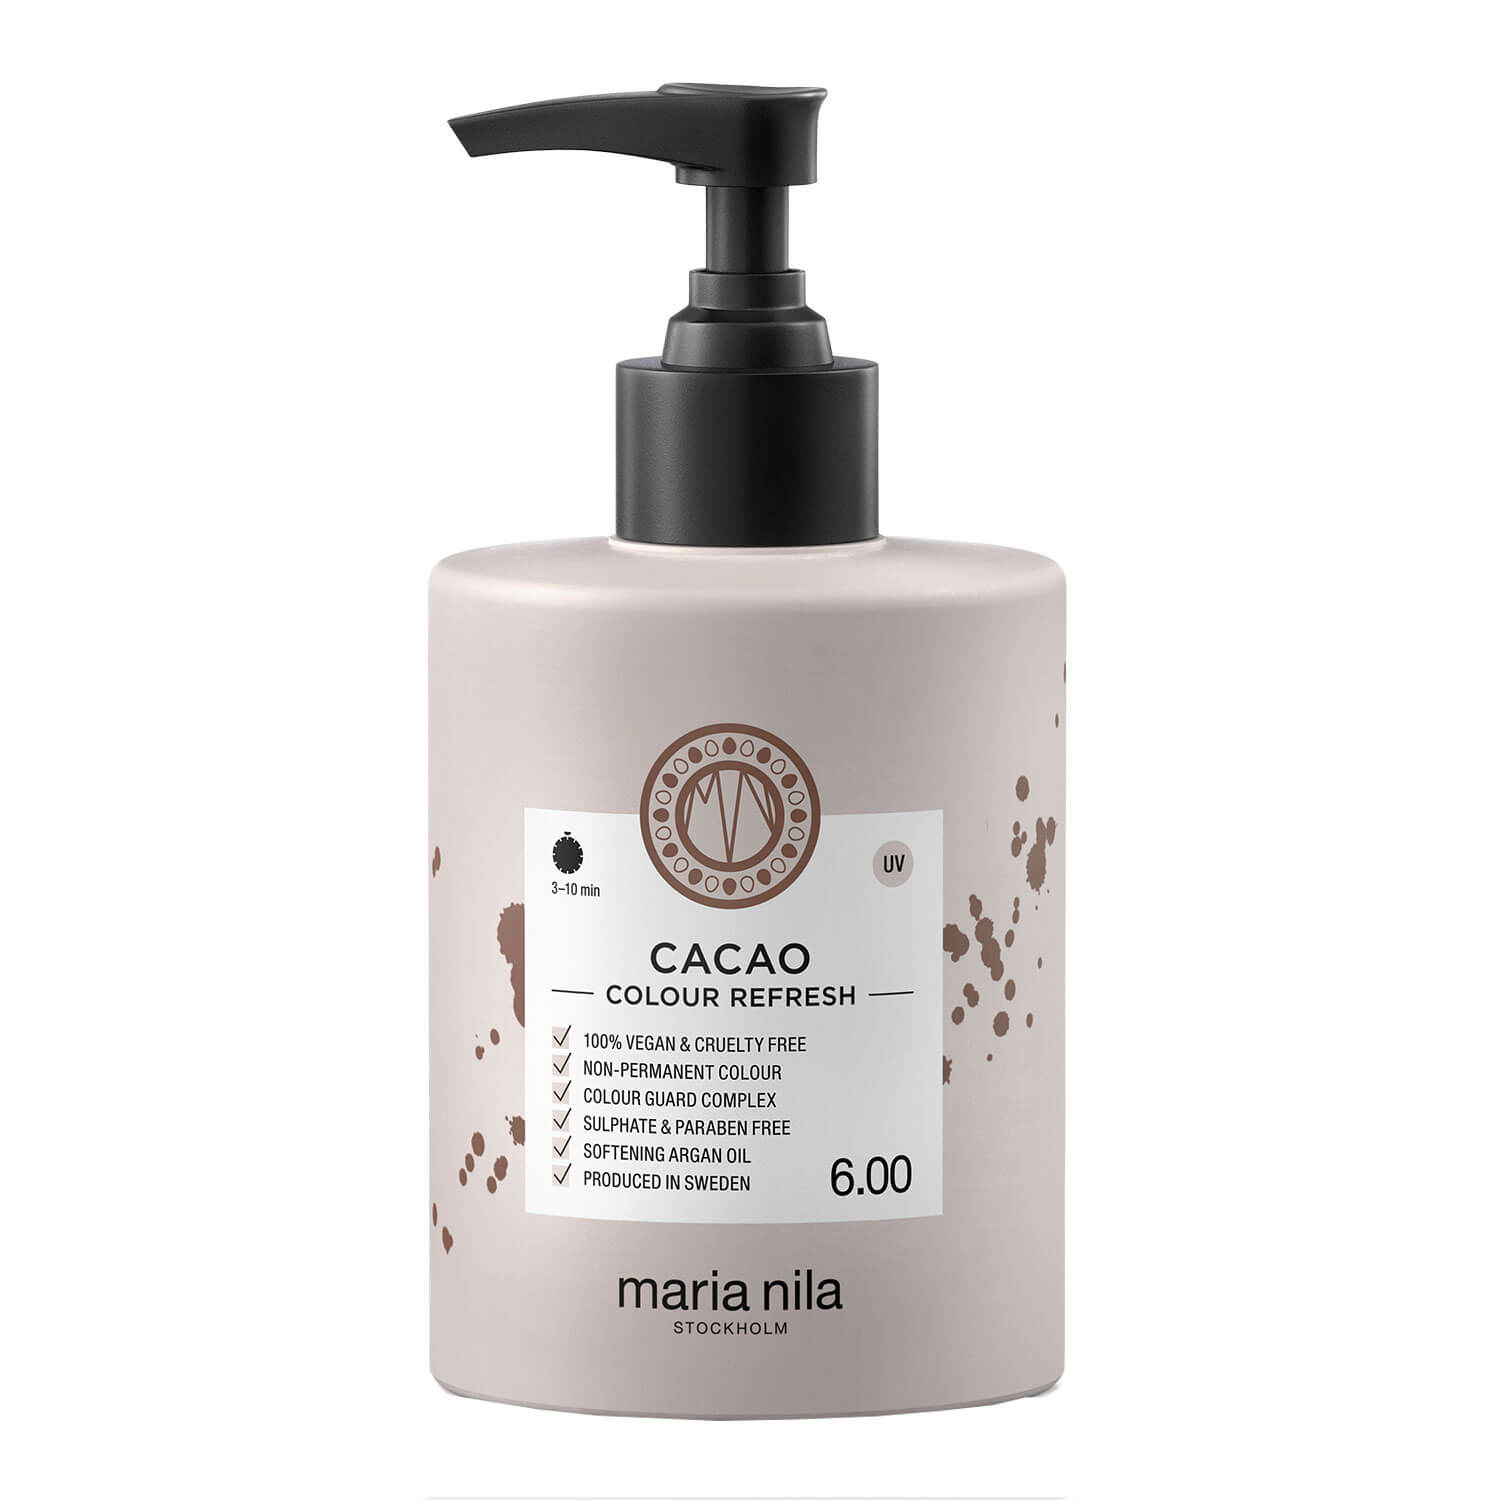 Colour Refresh - Cacao 6.00 - 300ml